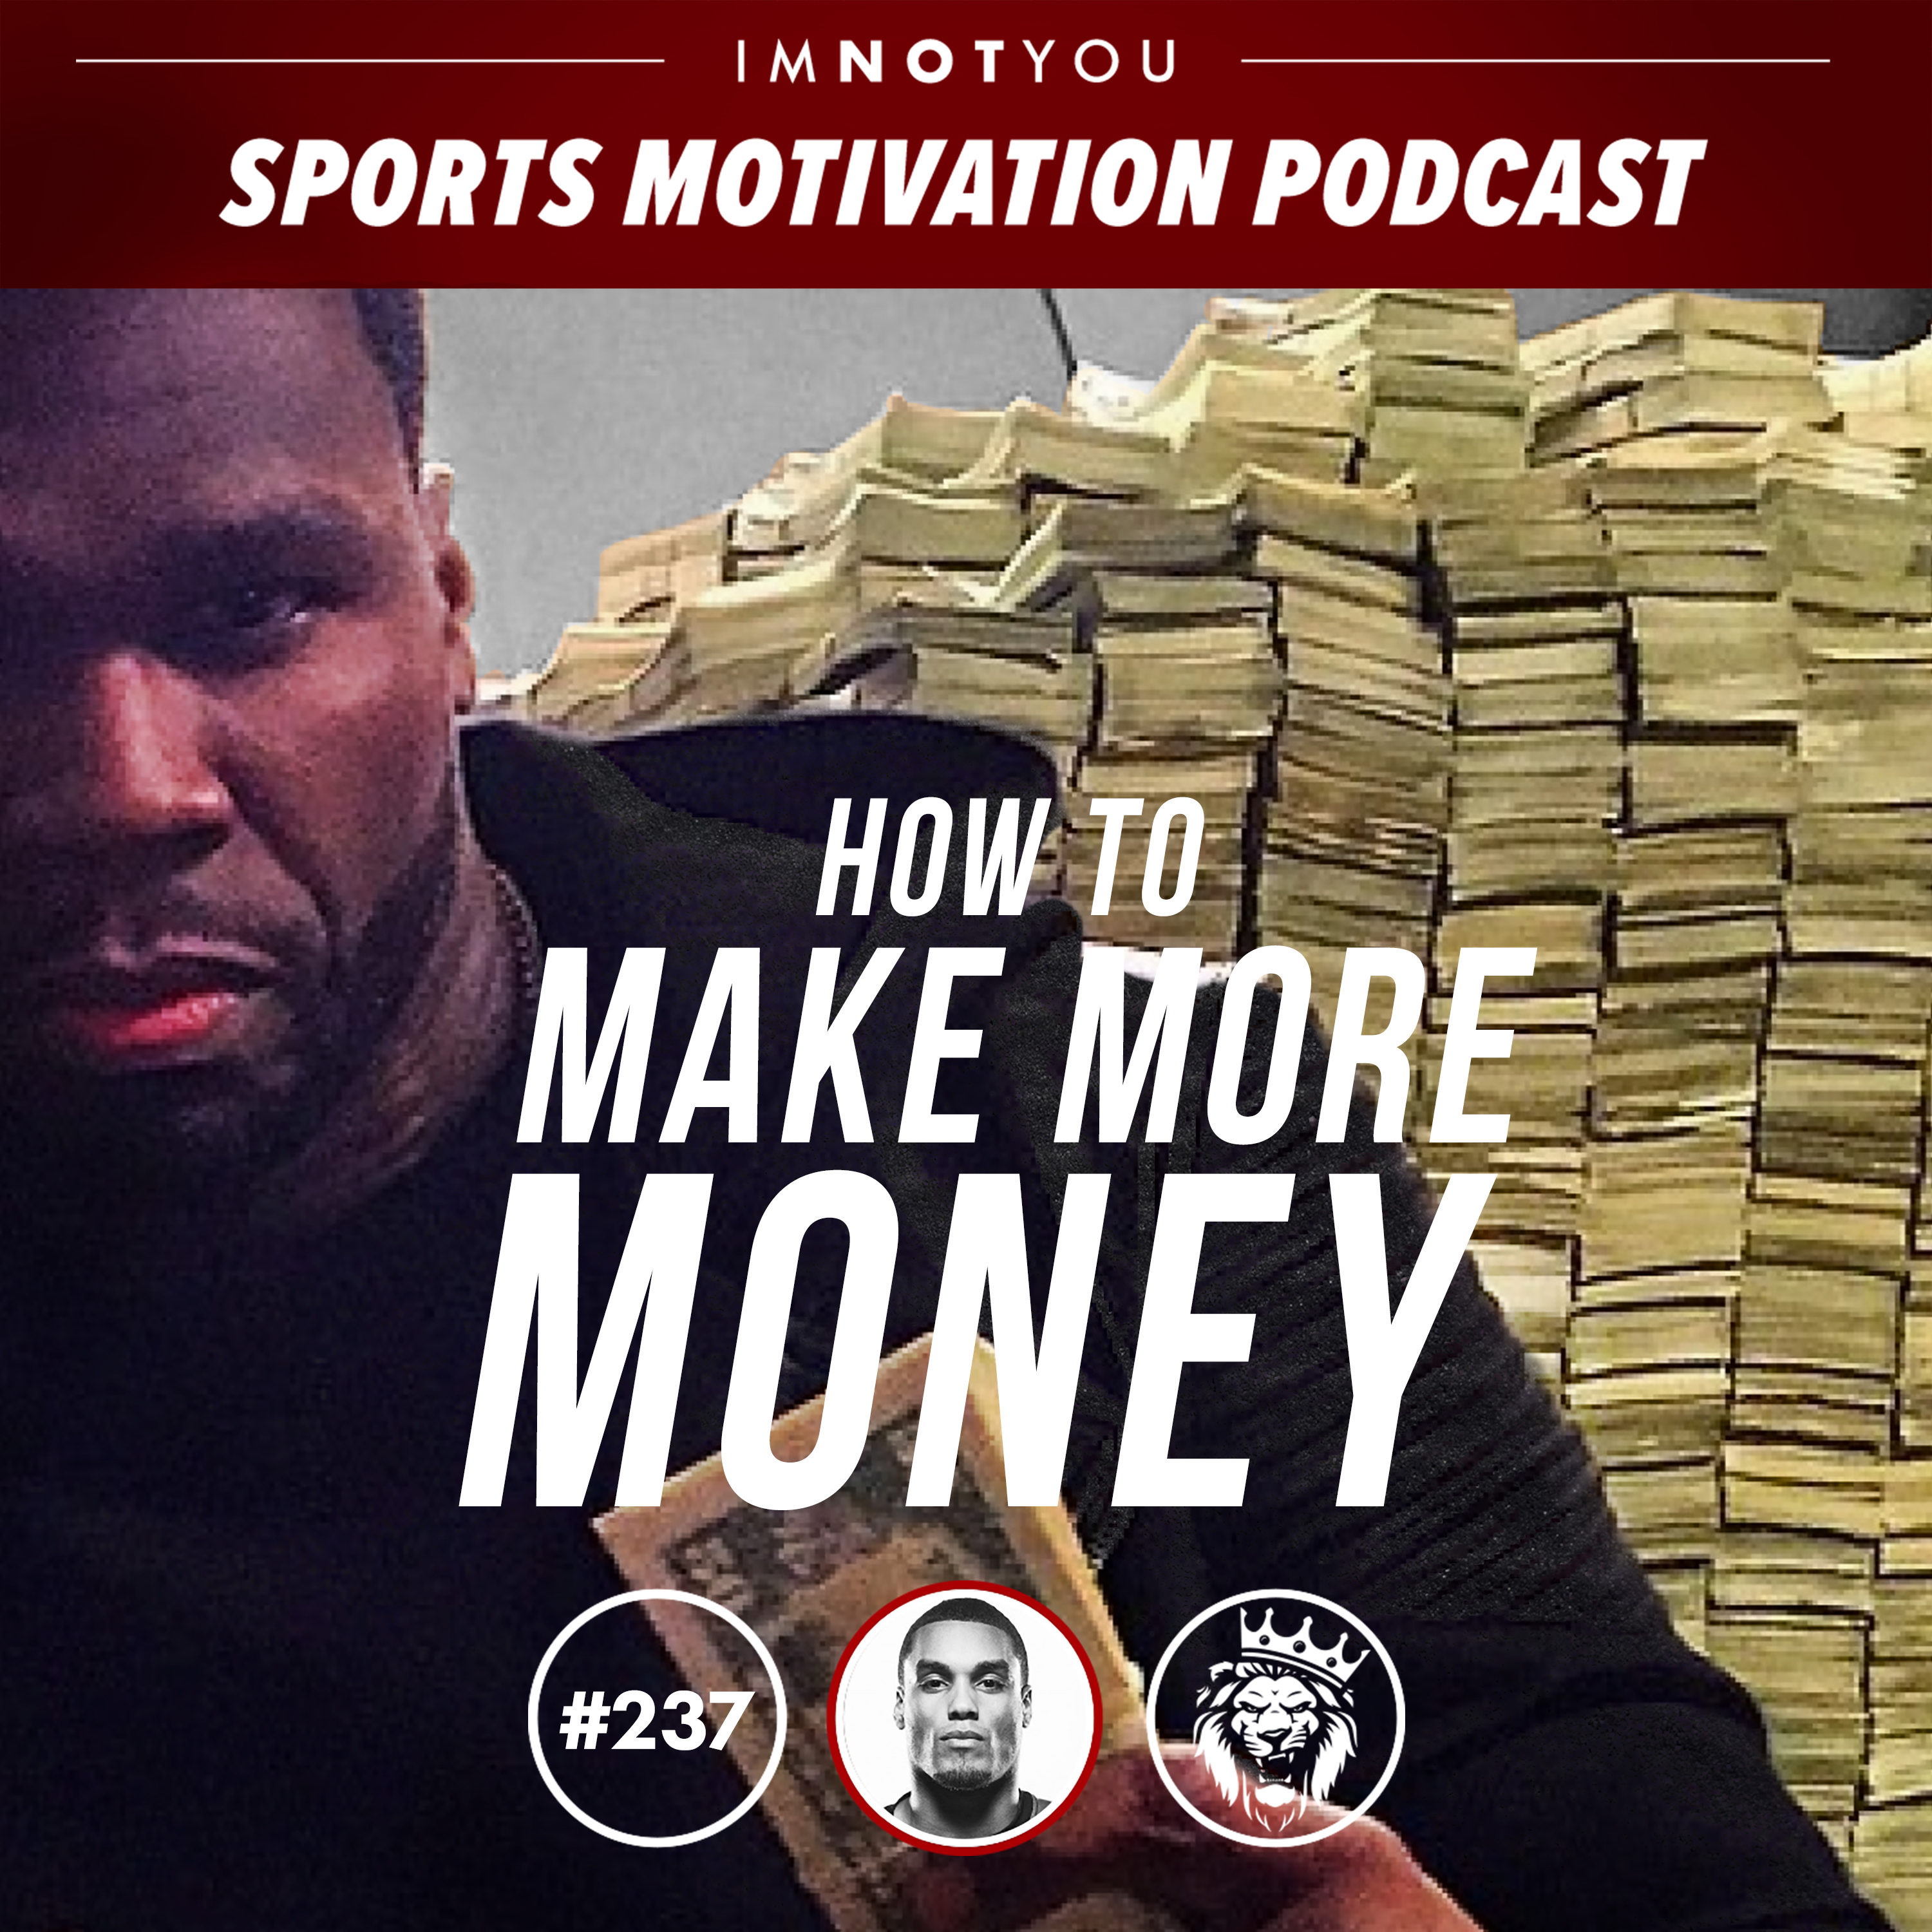 237: How to Make More Money